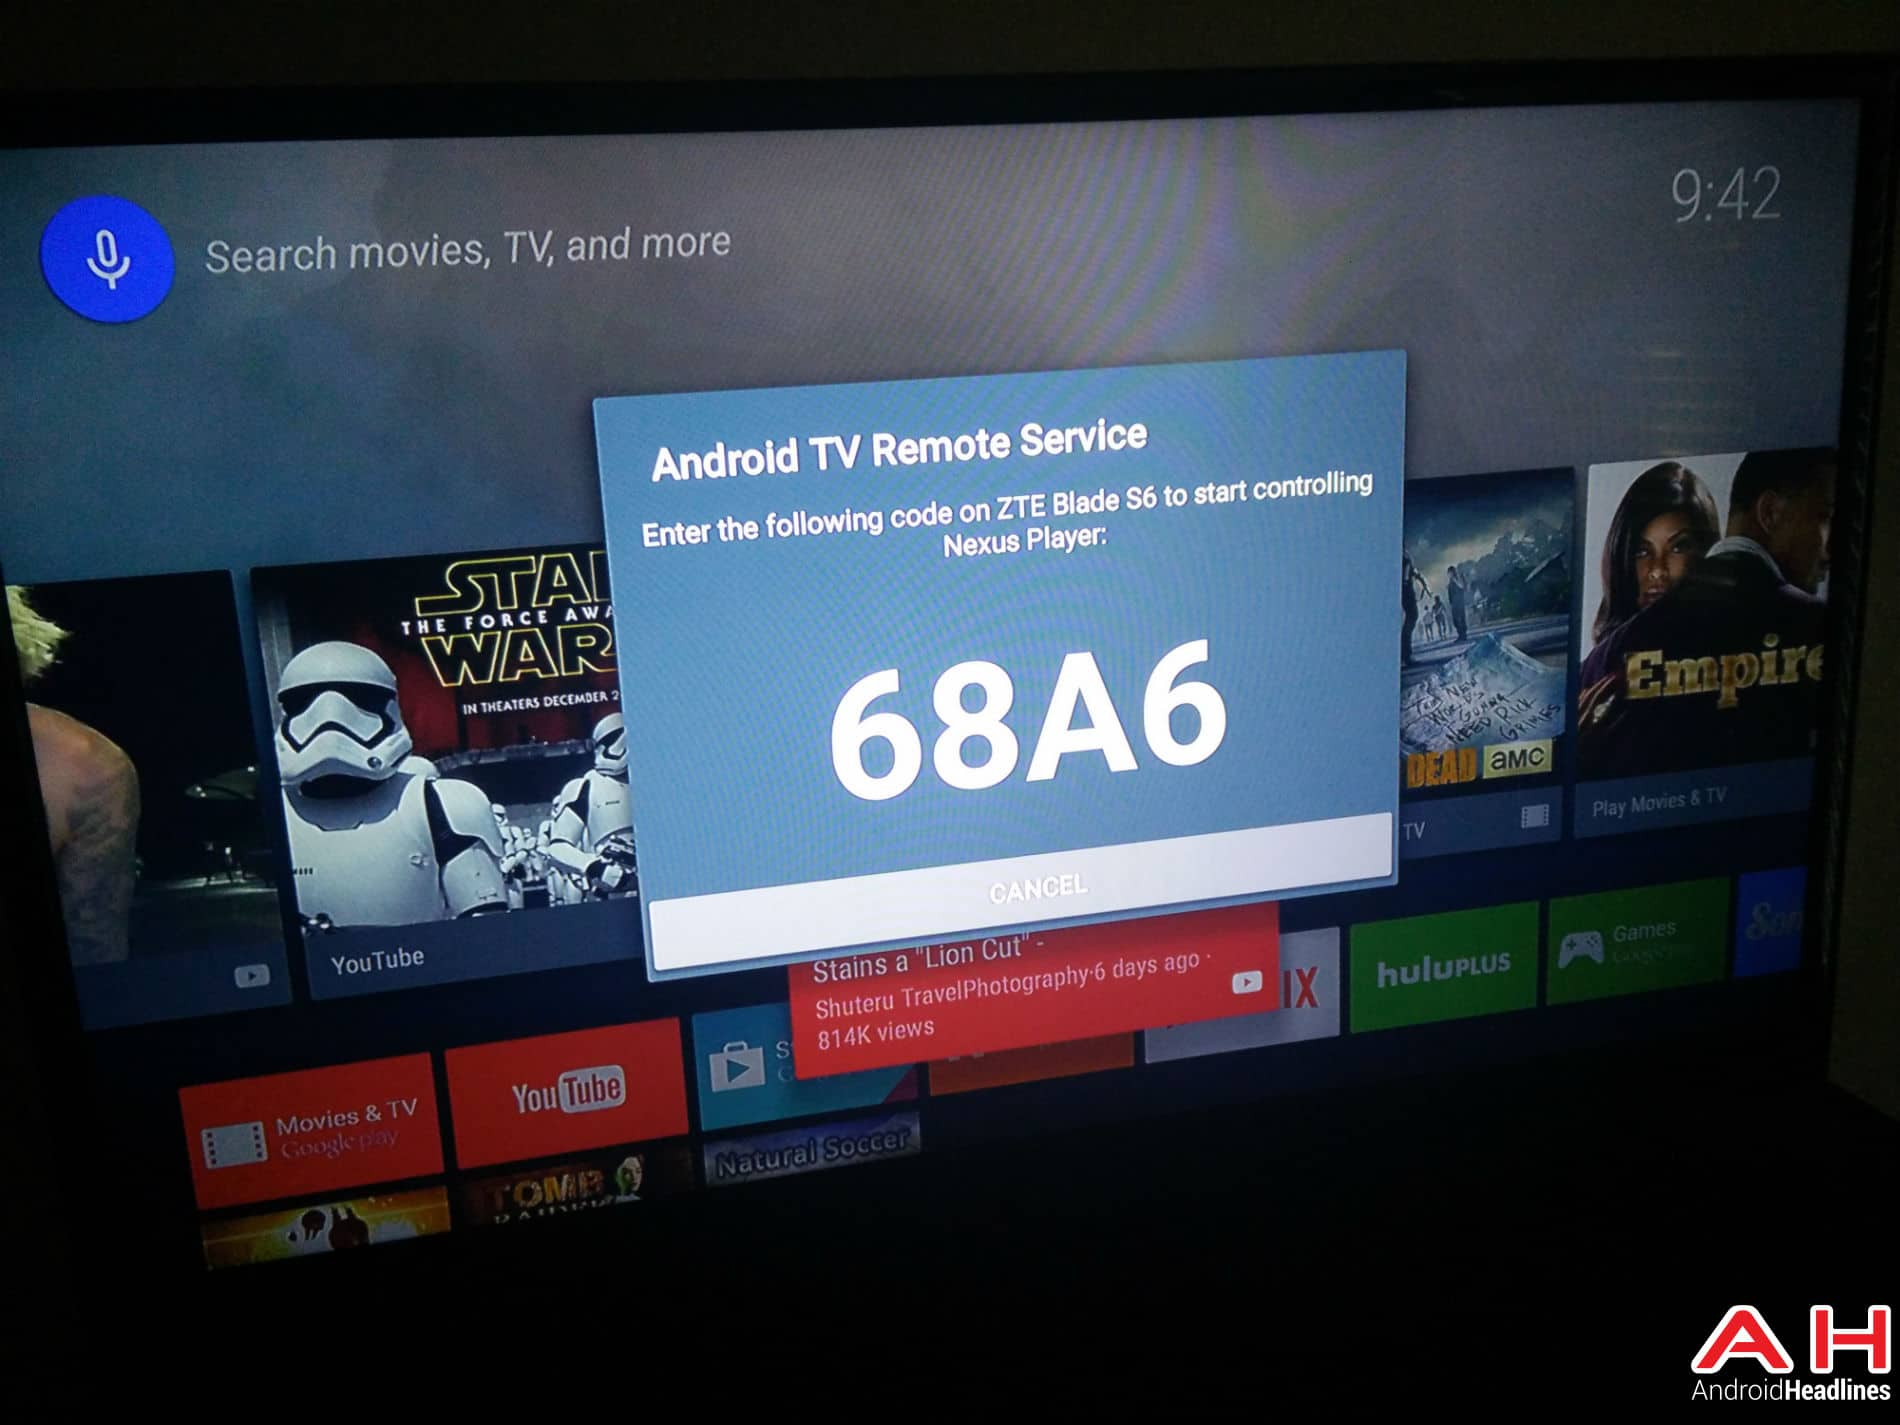 Android TV Remote App AH